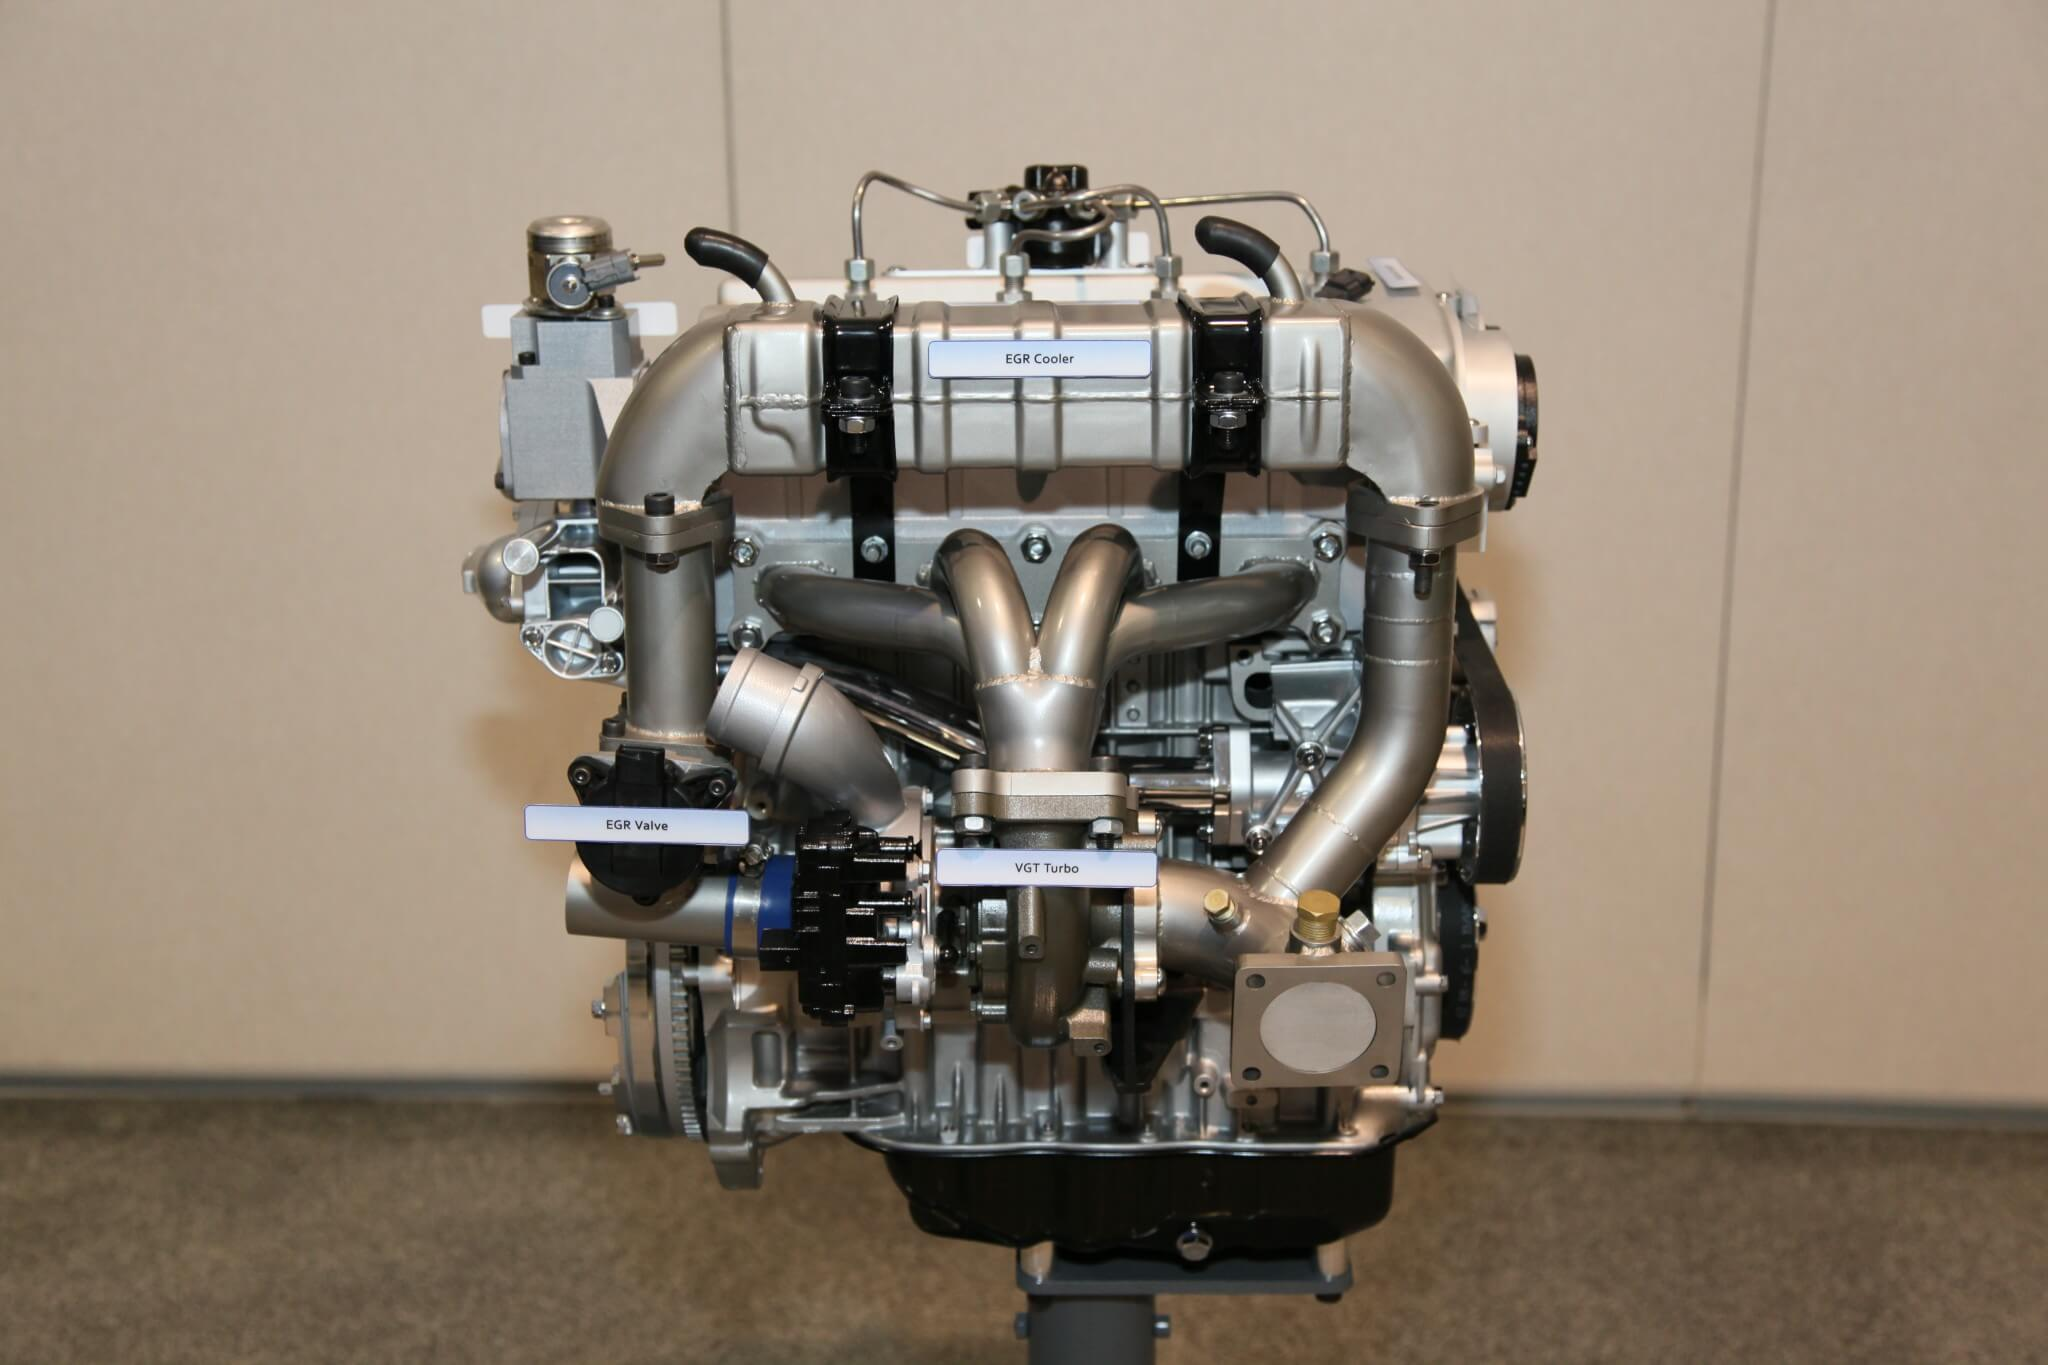 2. A side view clearly displays the massive EGR cooler, EGR valve, and the variable geometry turbocharger. Hyundai uses twin-scroll turbos for many production engines so the use of a VGT turbo is significant.